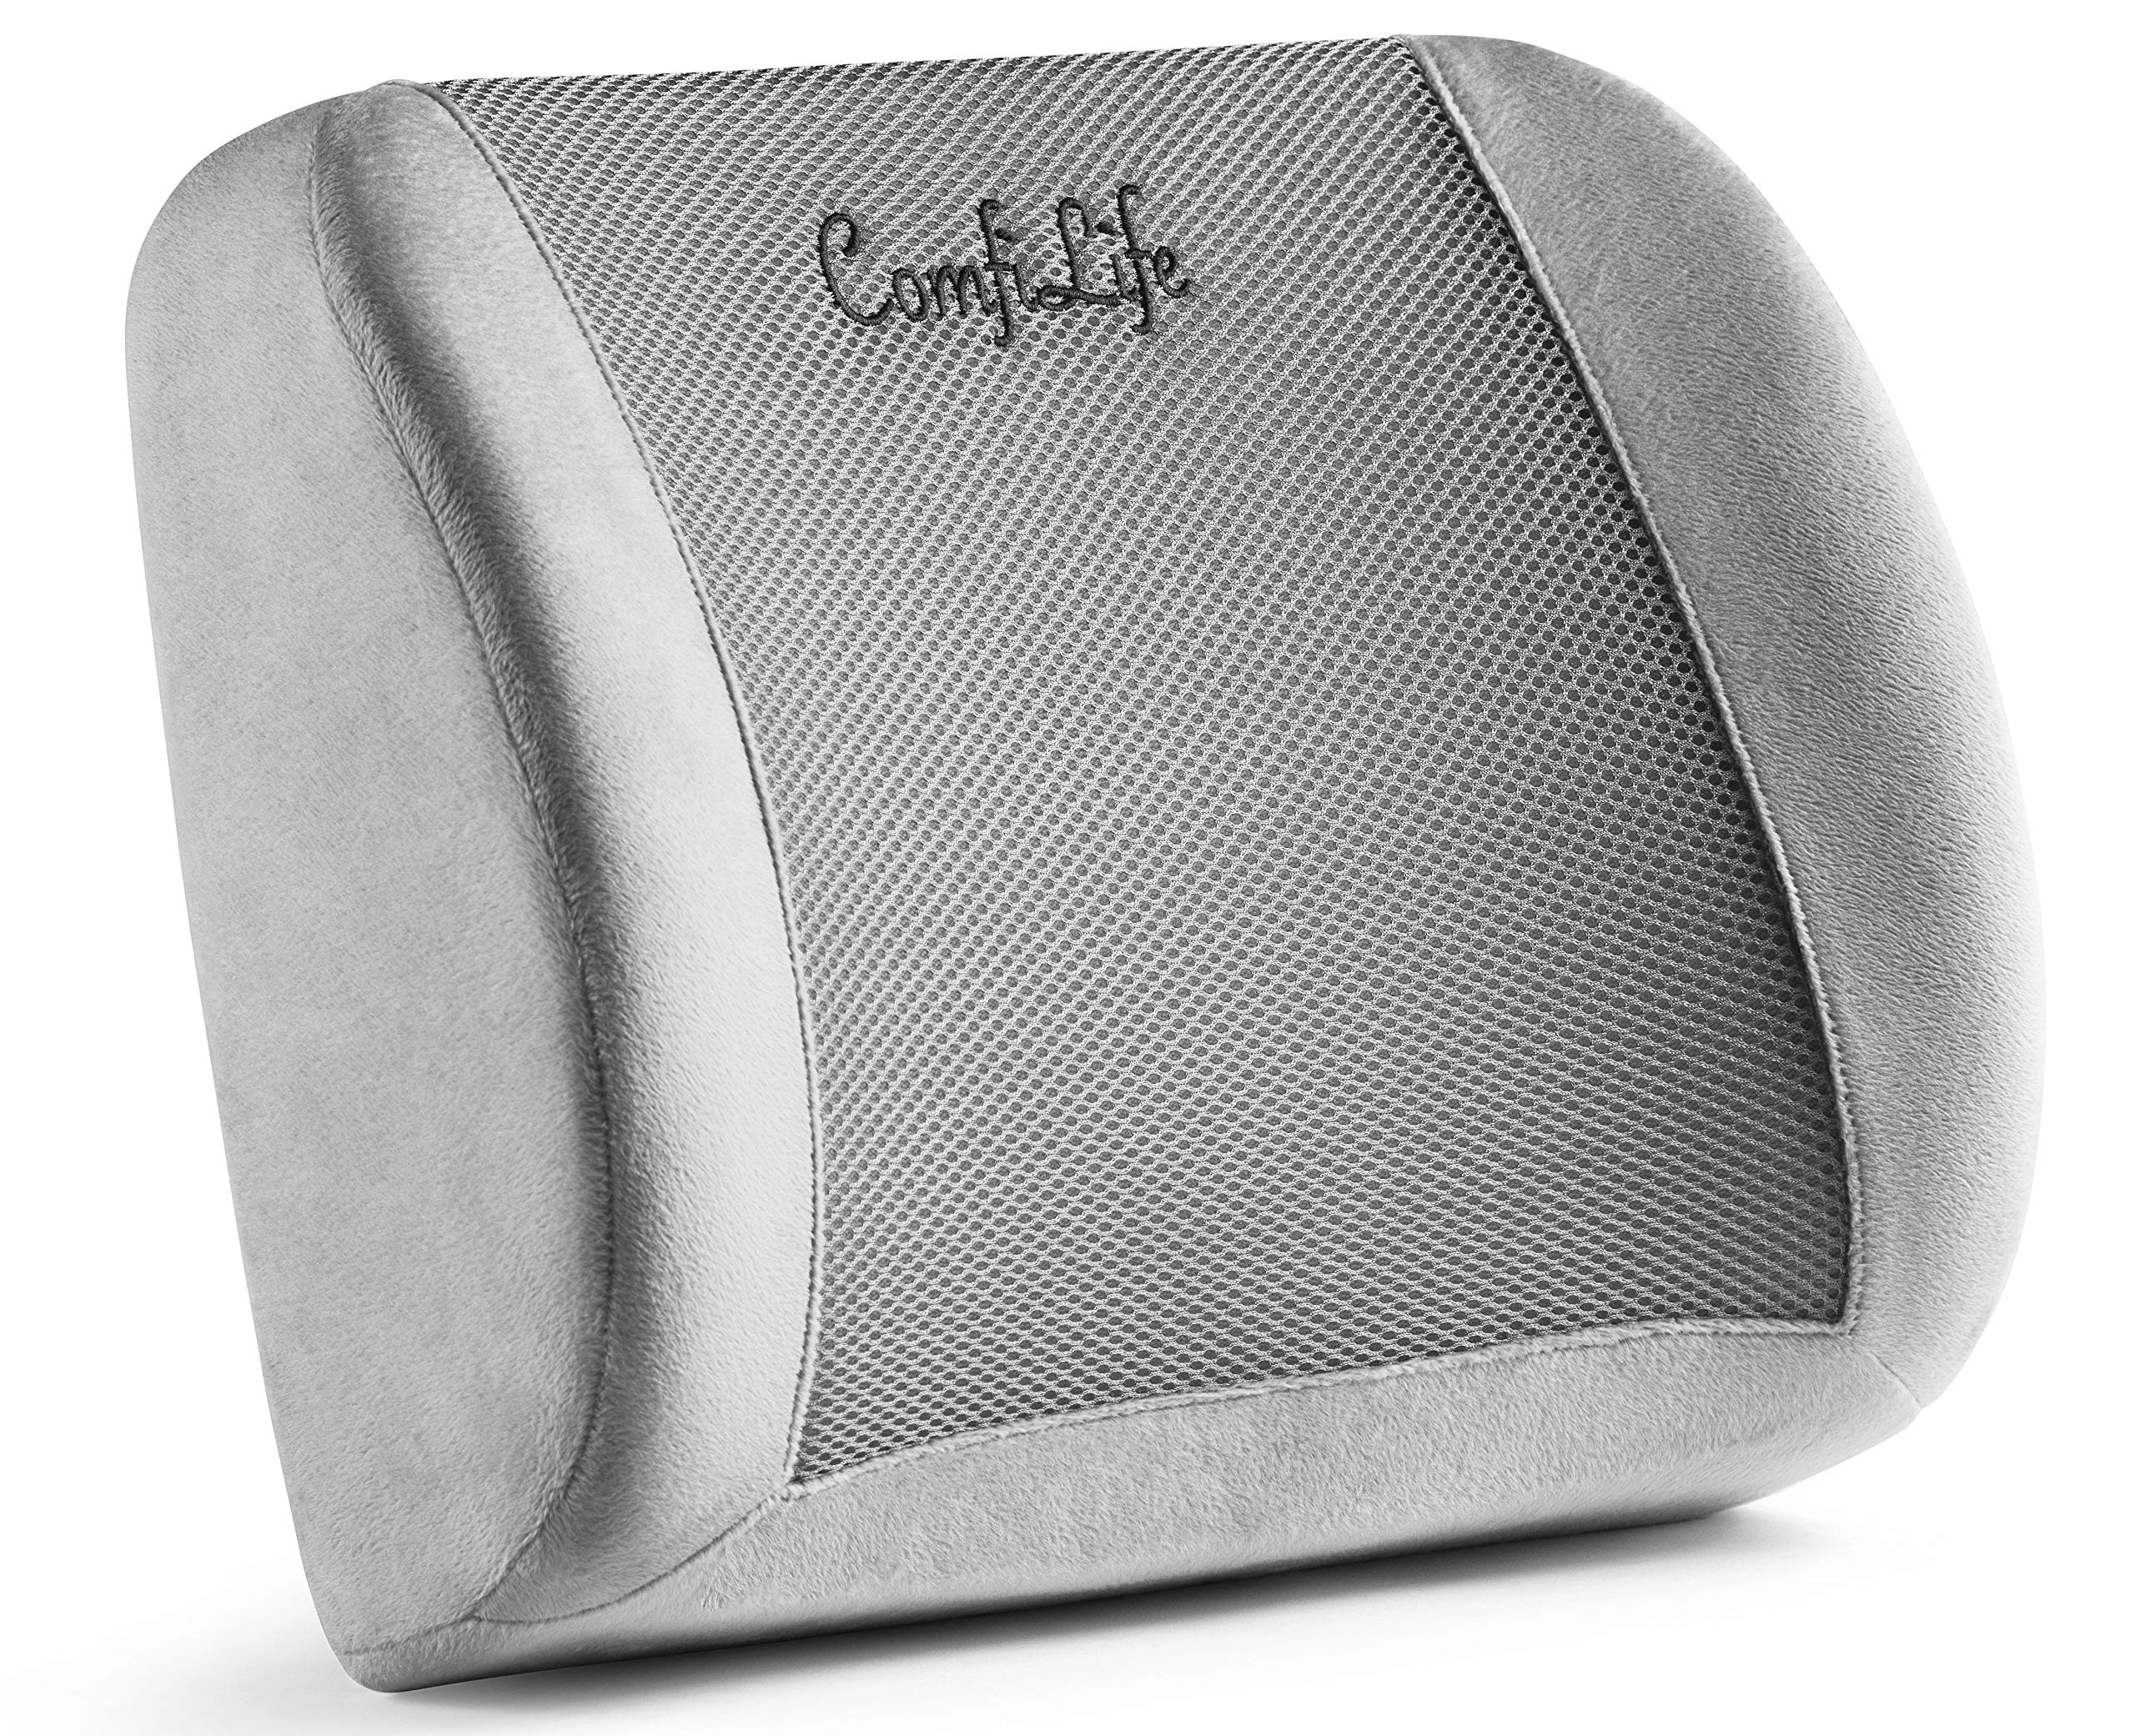 ComfiLife Lumbar Support Back Pillow Office Chair and Car Seat Cushion - Memory Foam with Adjustable Strap and Breathable 3D Mesh by ComfiLife